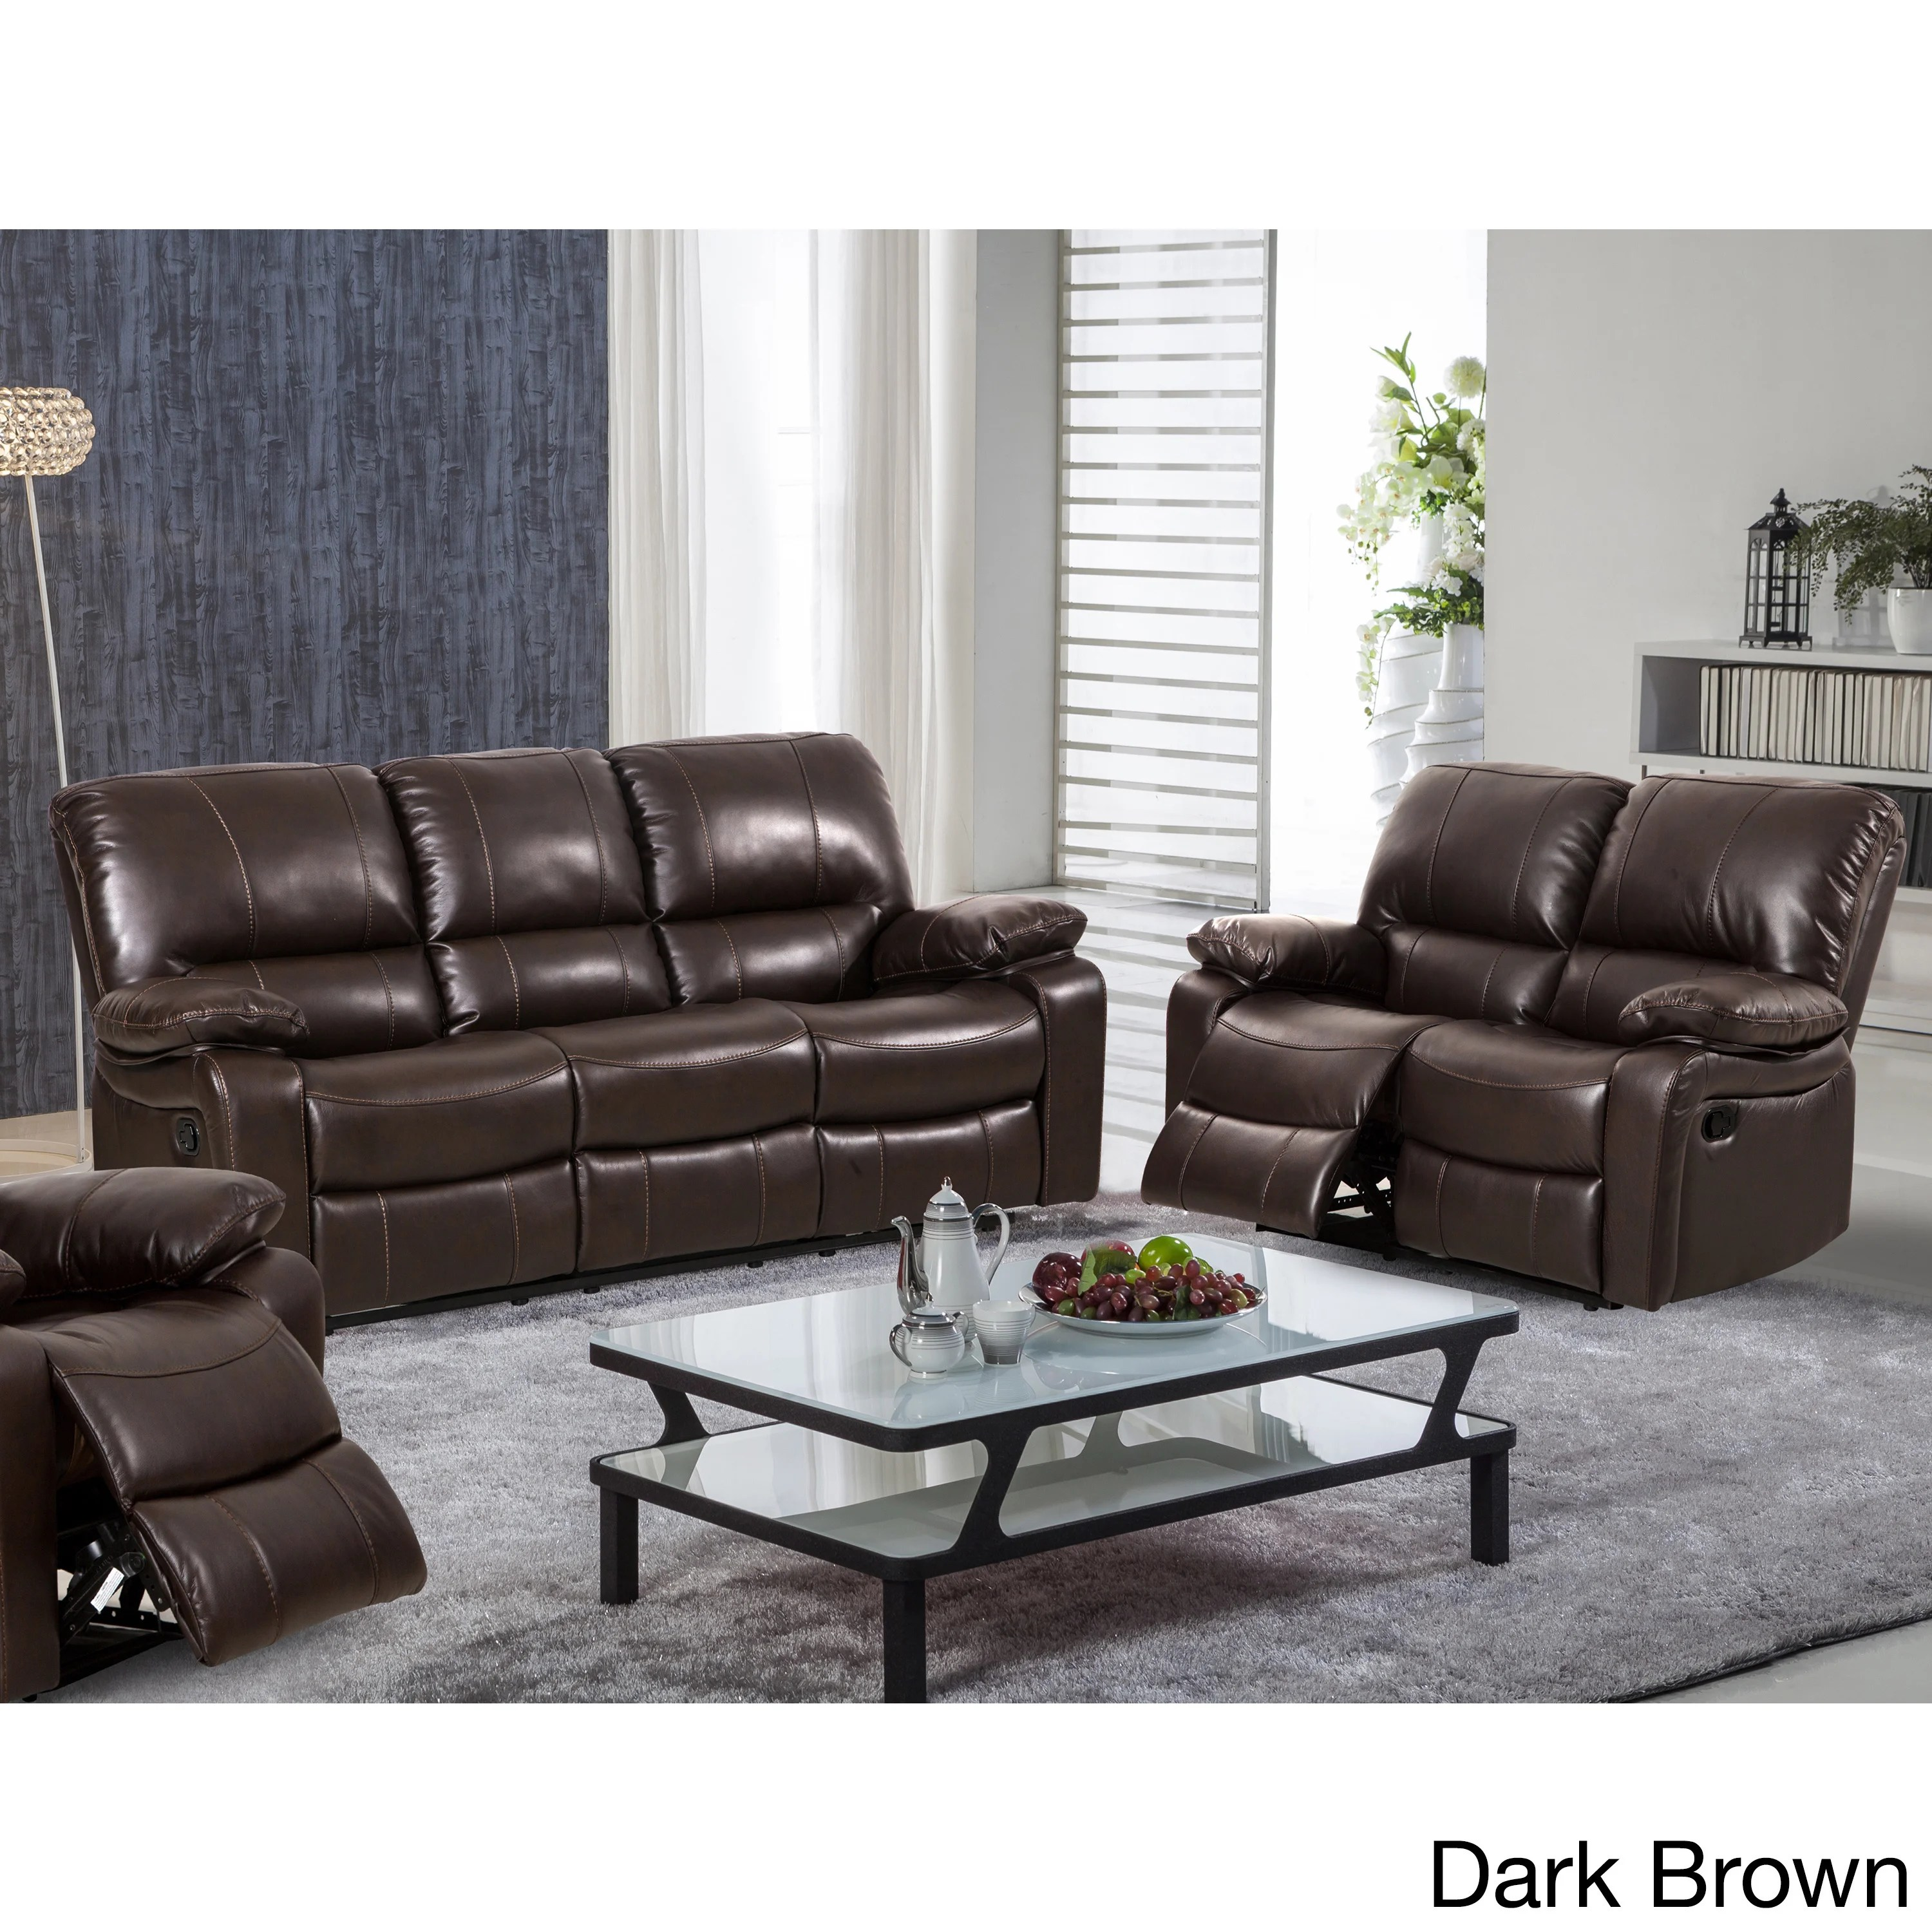 ryker reclining sofa and loveseat 2 piece set sectional sofas discount prices shop samantha leather gel living room